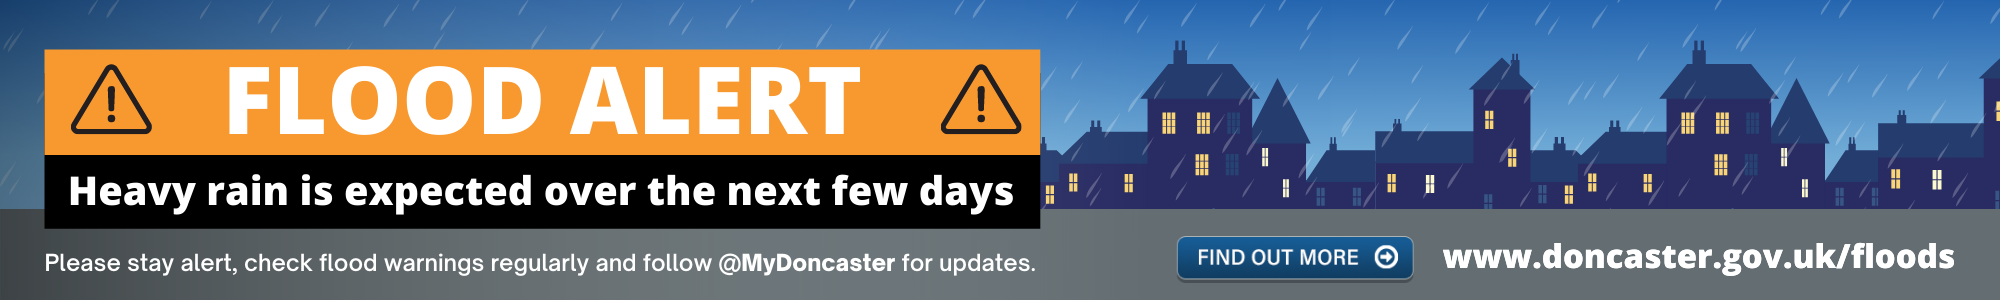 Flood warning for Doncaster in place. Stay alert and follow mydoncaster on social media for more updates.